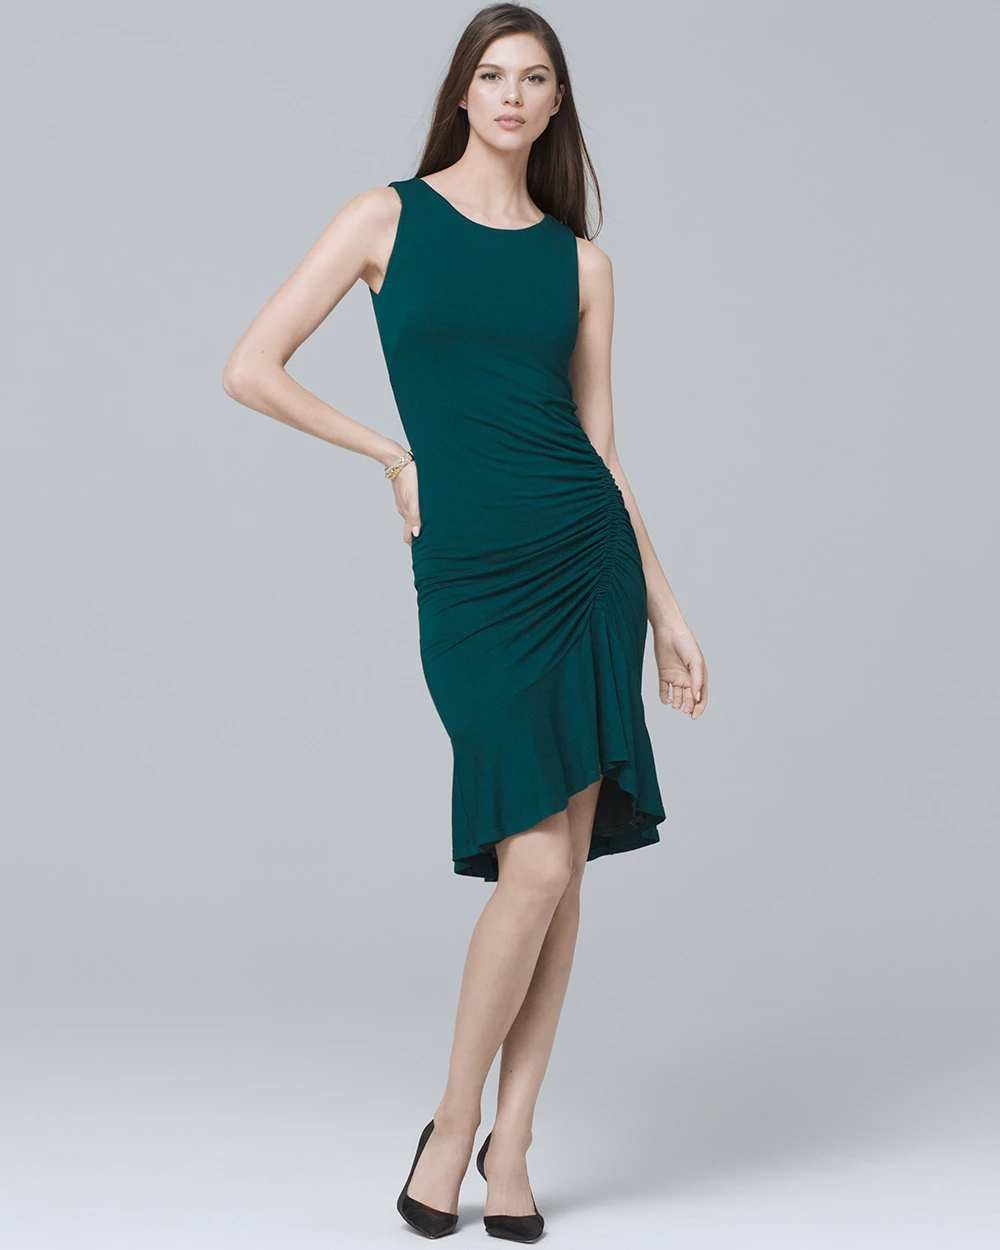 RUCHED RUFFLE-HEM KNIT SHEATH DRESS